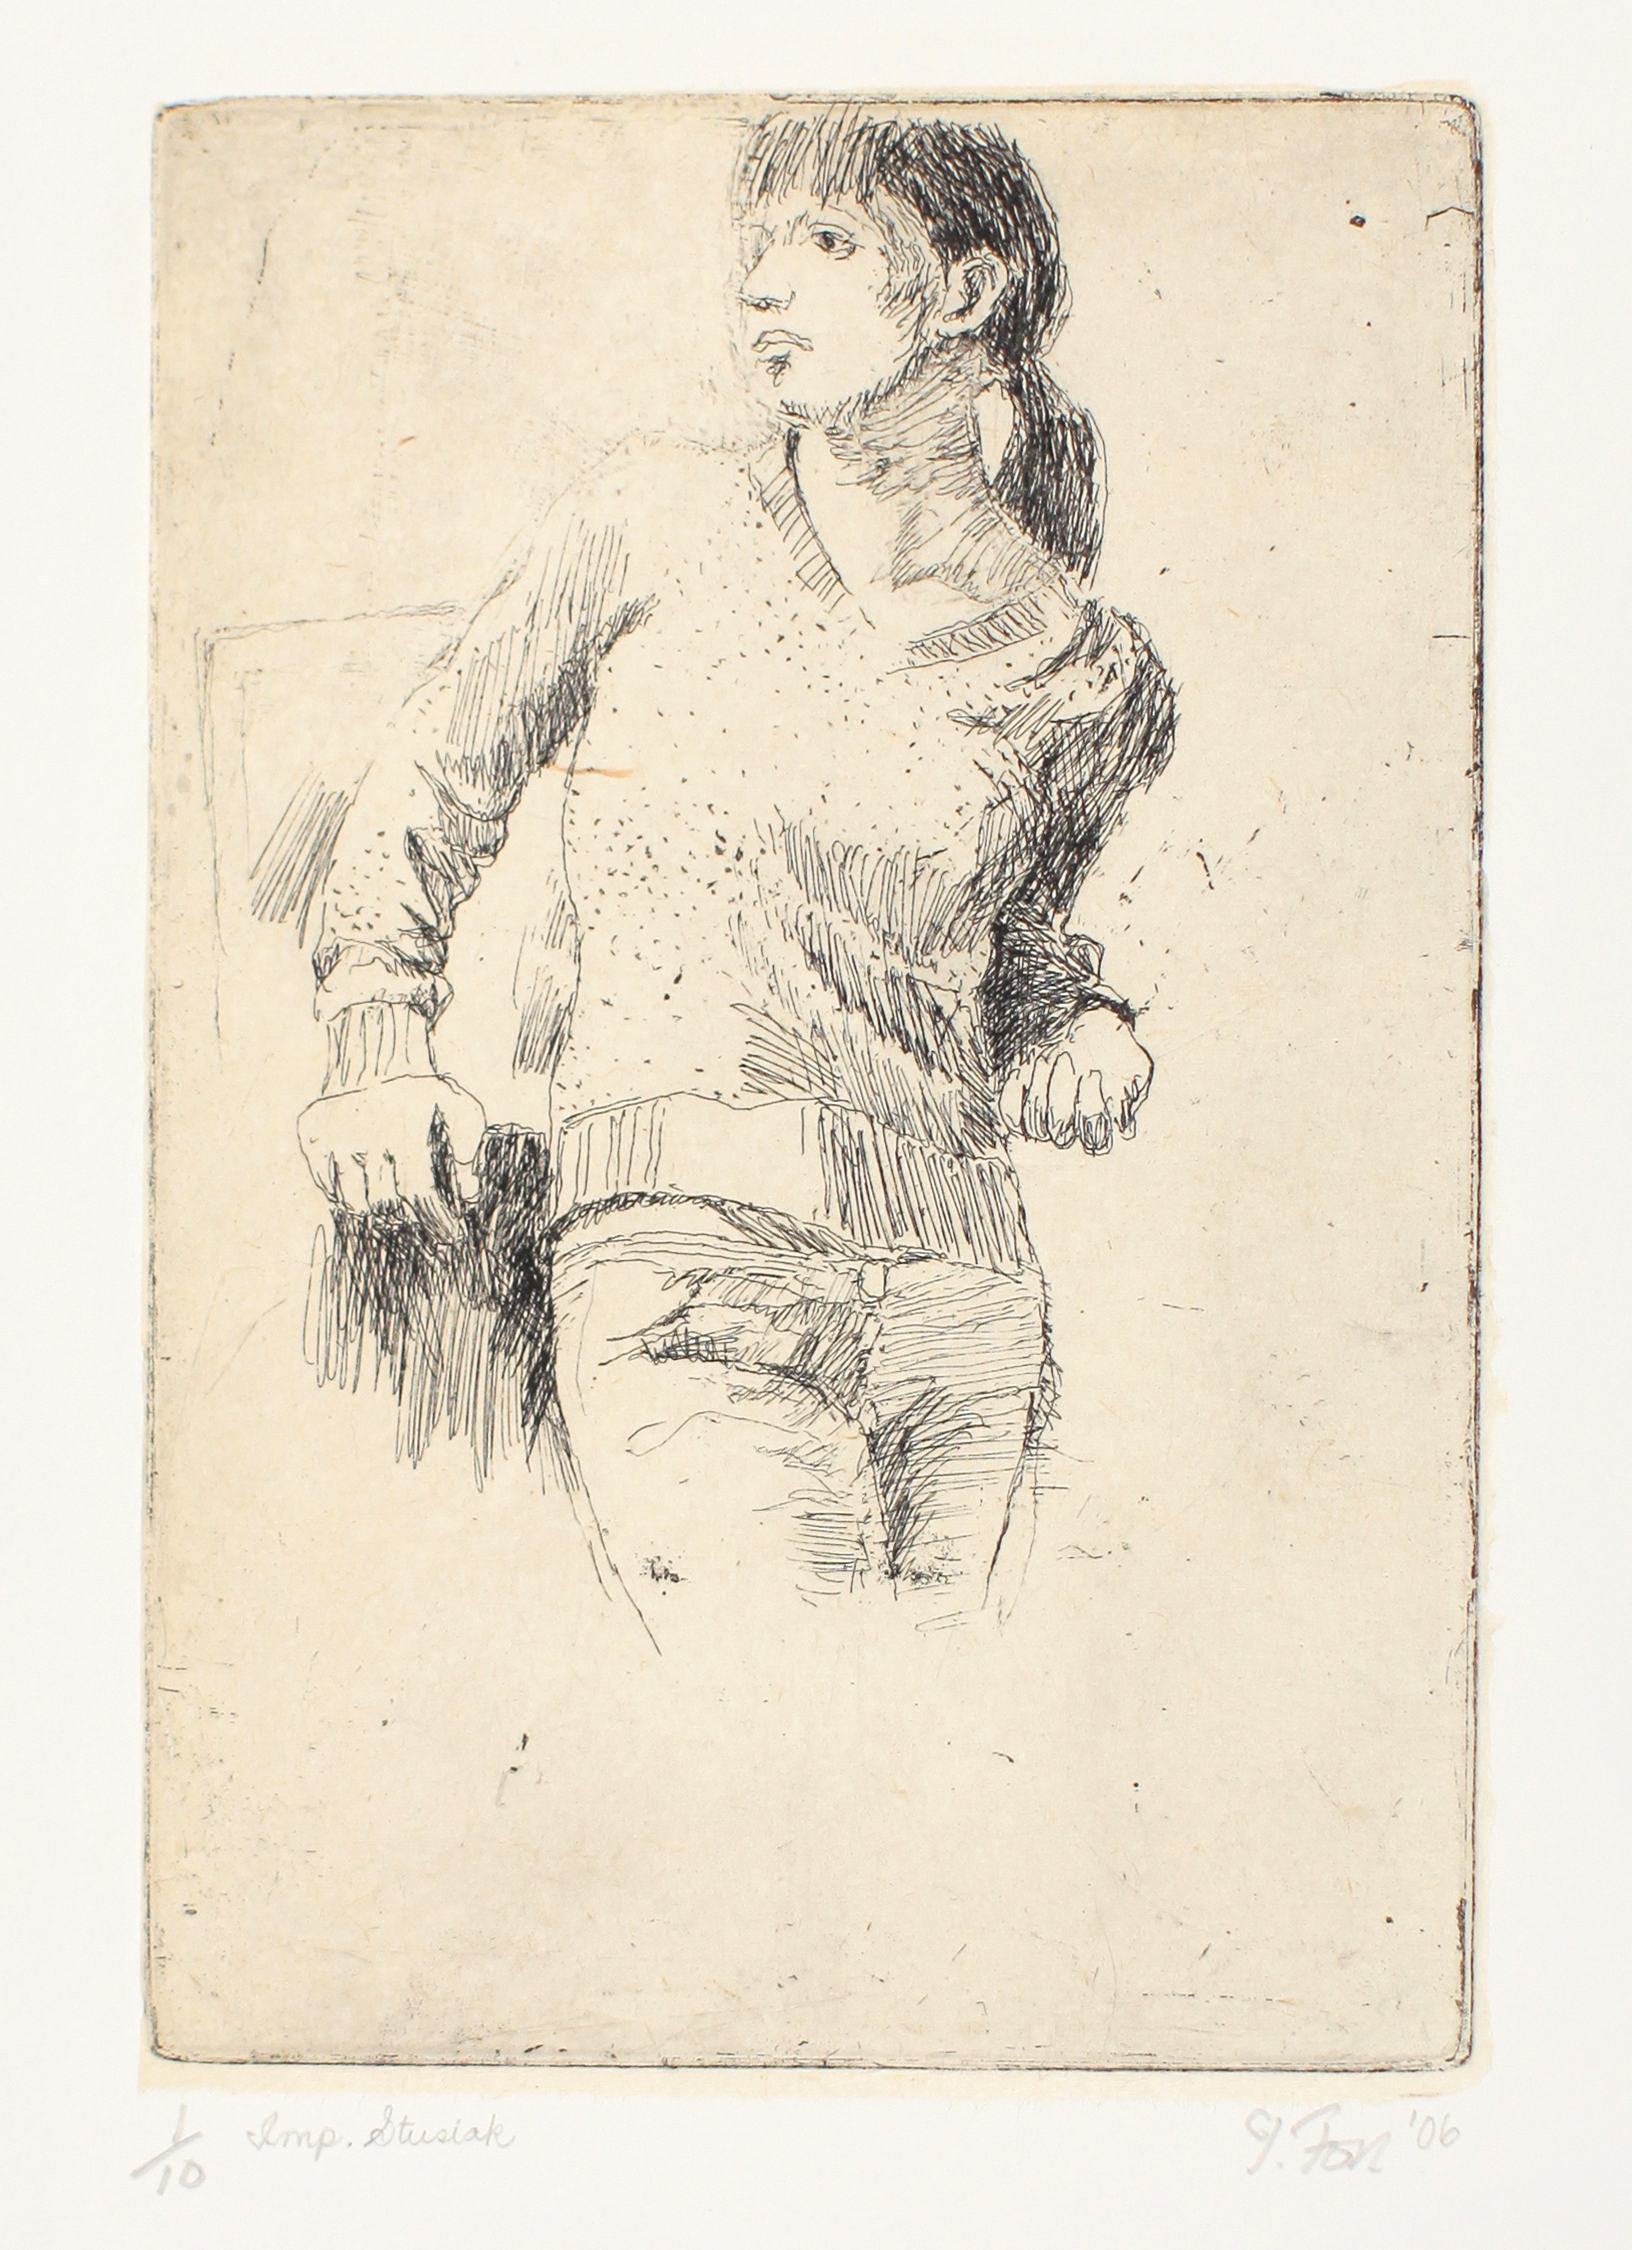 2006_Victoria_etching_and_chine_colle_ed_1-10_plus_1ap_paper_15x11in_image_9x6in_WPF415.jpg